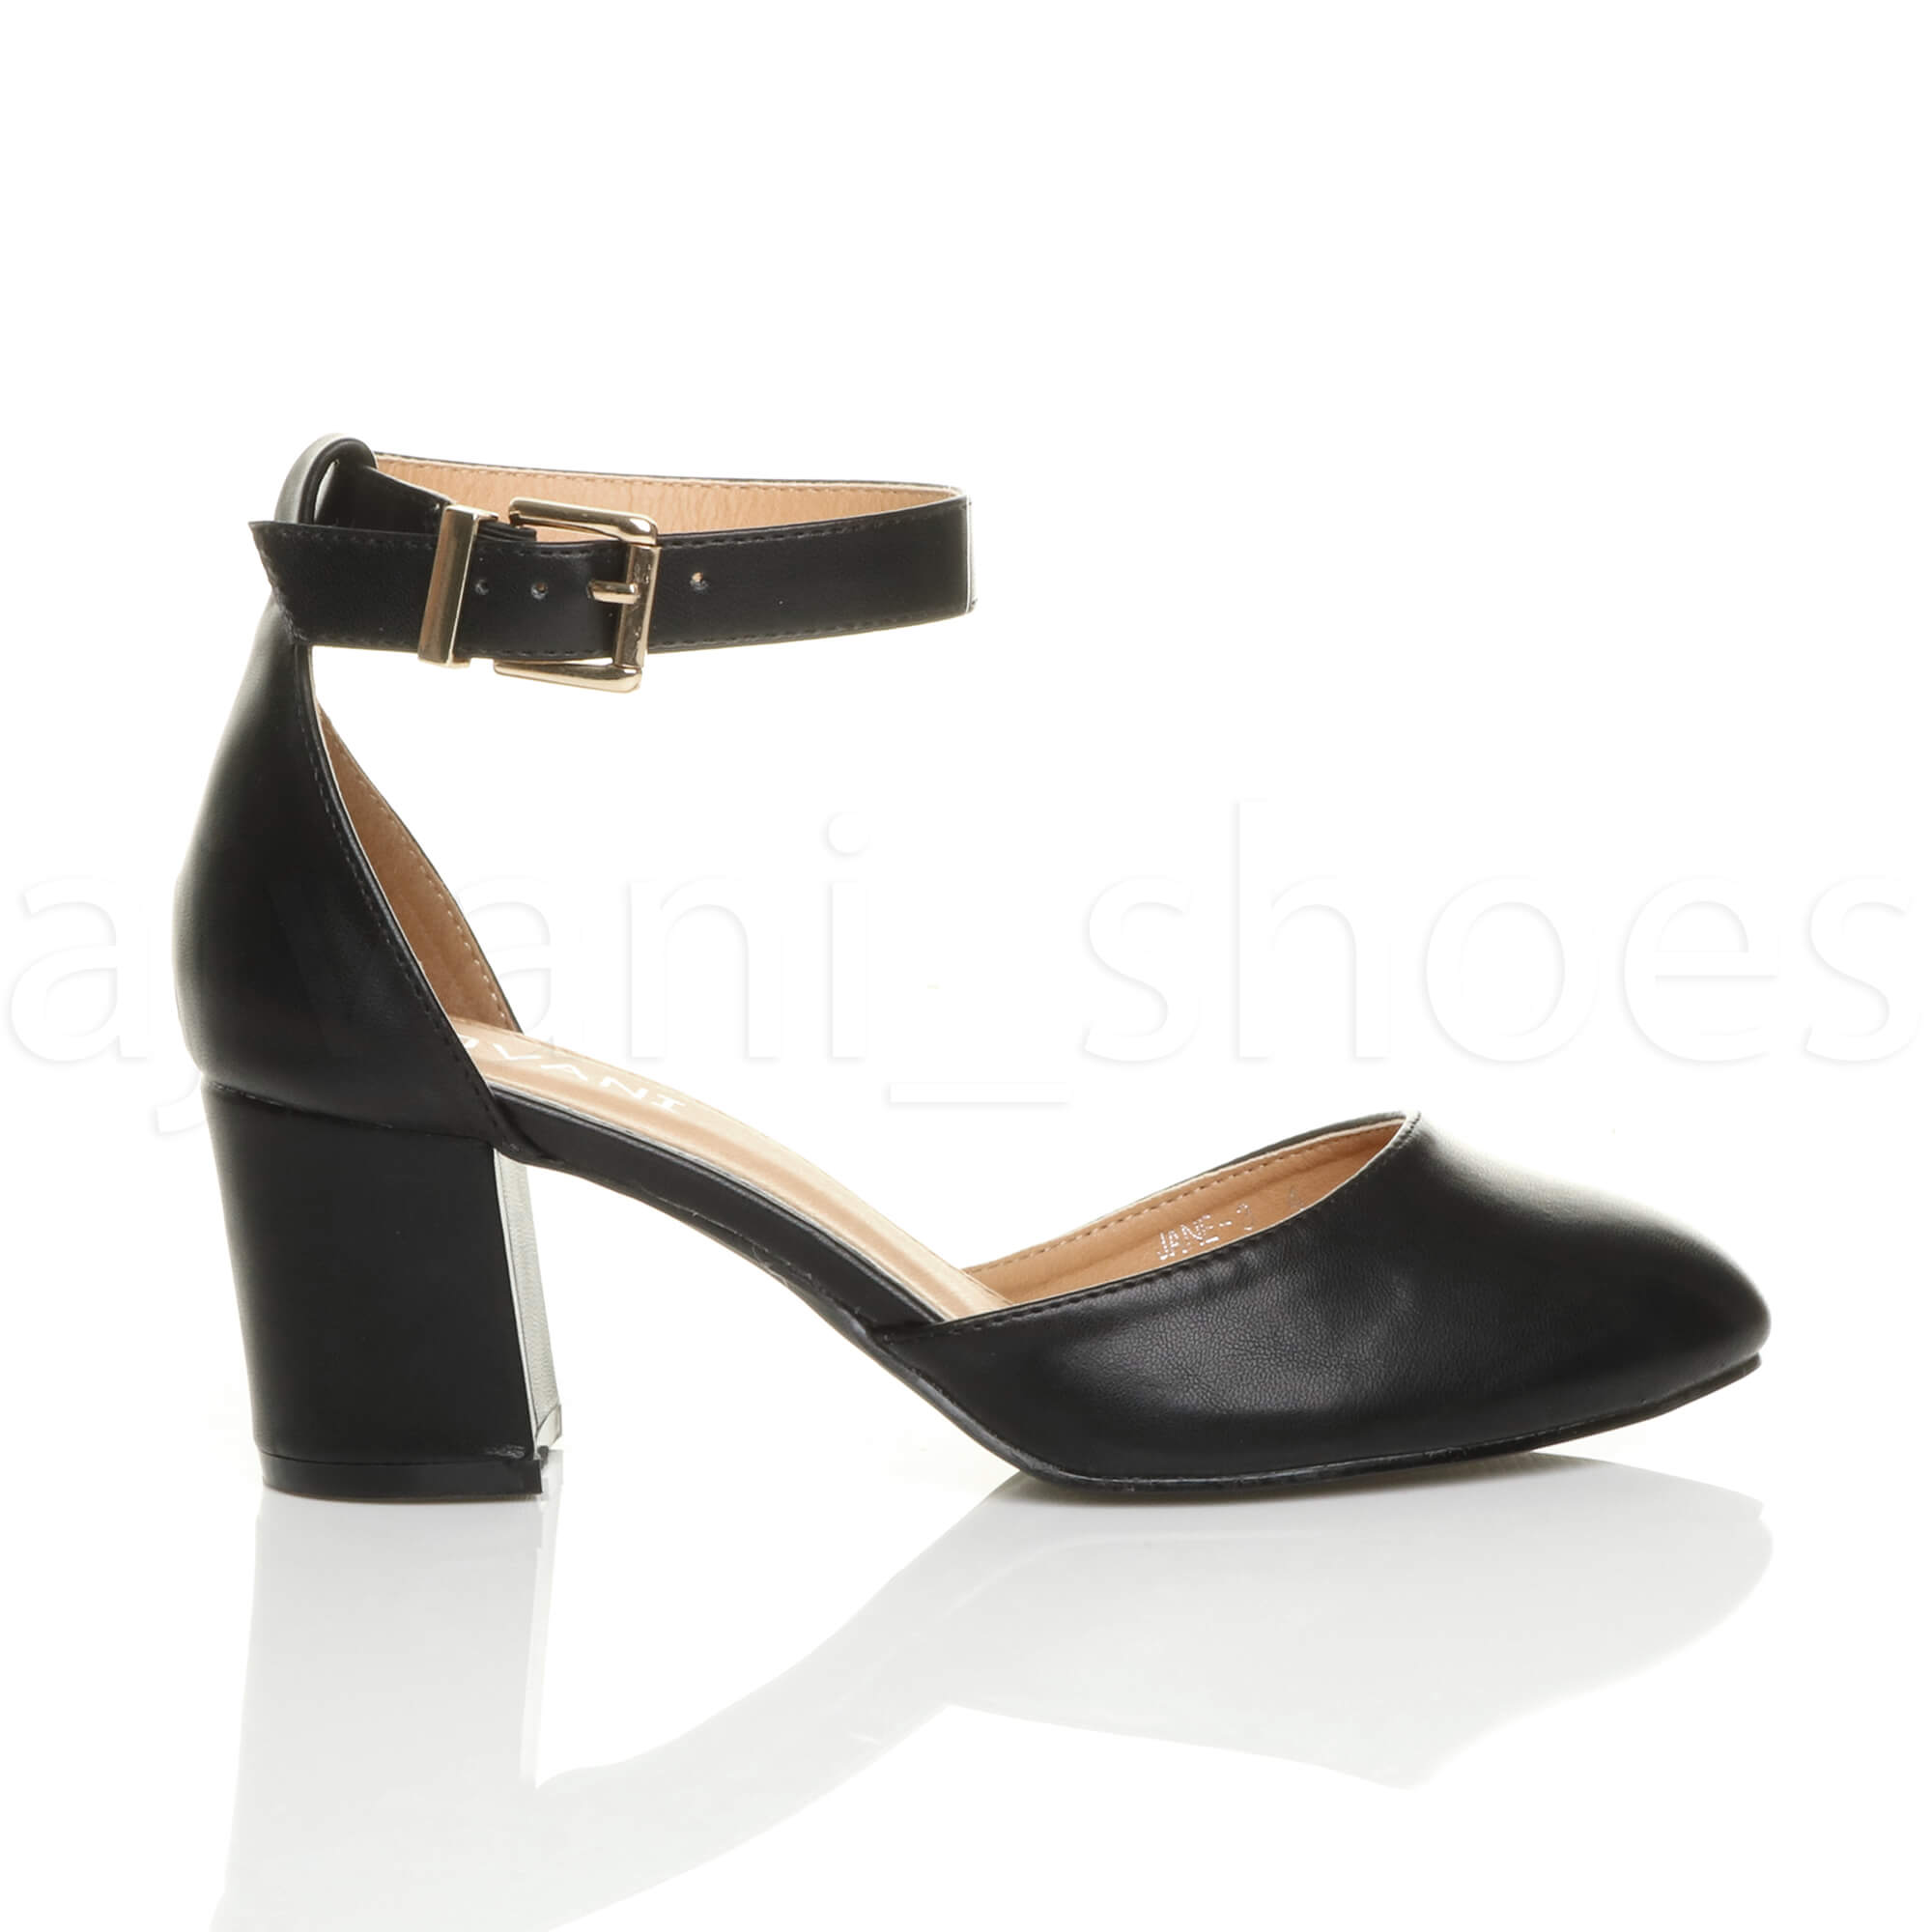 WOMENS-LADIES-LOW-MID-BLOCK-HEEL-ANKLE-STRAP-MARY-JANE-COURT-SHOES-SANDALS-SIZE thumbnail 3